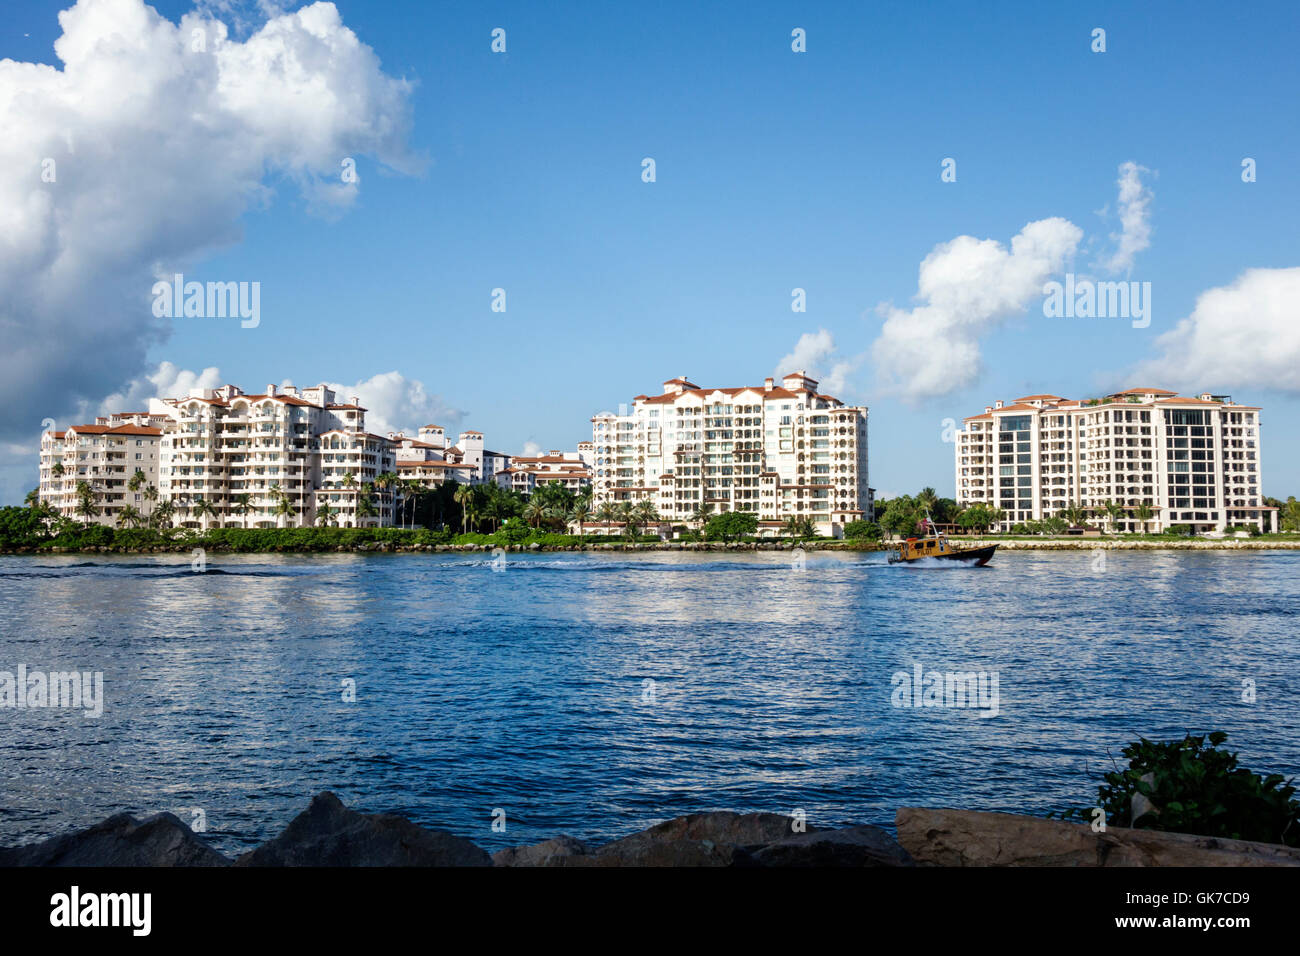 12 with Stock Photo Florida Miami Beach South Beach Fisher Island Government Cut Shipping 115104117 on Die Villen Am  er See as well 1106 additionally Lbi Beach Boho Bridal Shower Beach Haven Nj furthermore Seafarer Key Largo Resort And Beach as well The Cloister Sea Island.